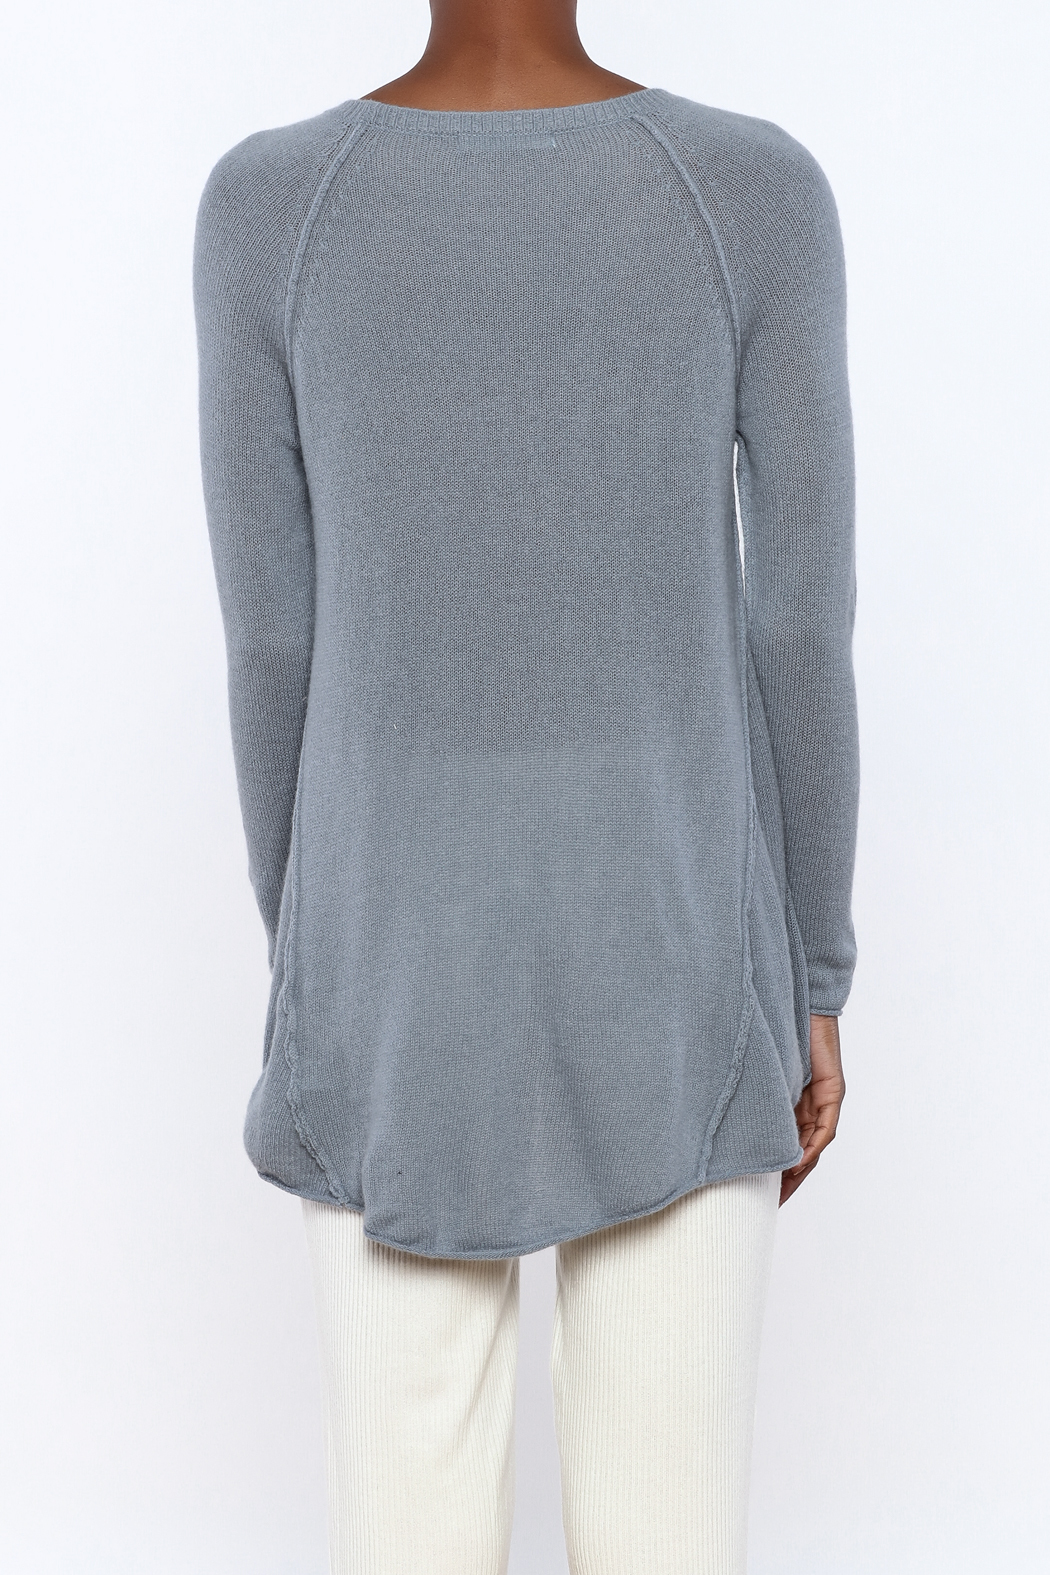 subtle luxury Cozy Cashmere Swing Sweater from Idaho by Madeline ...